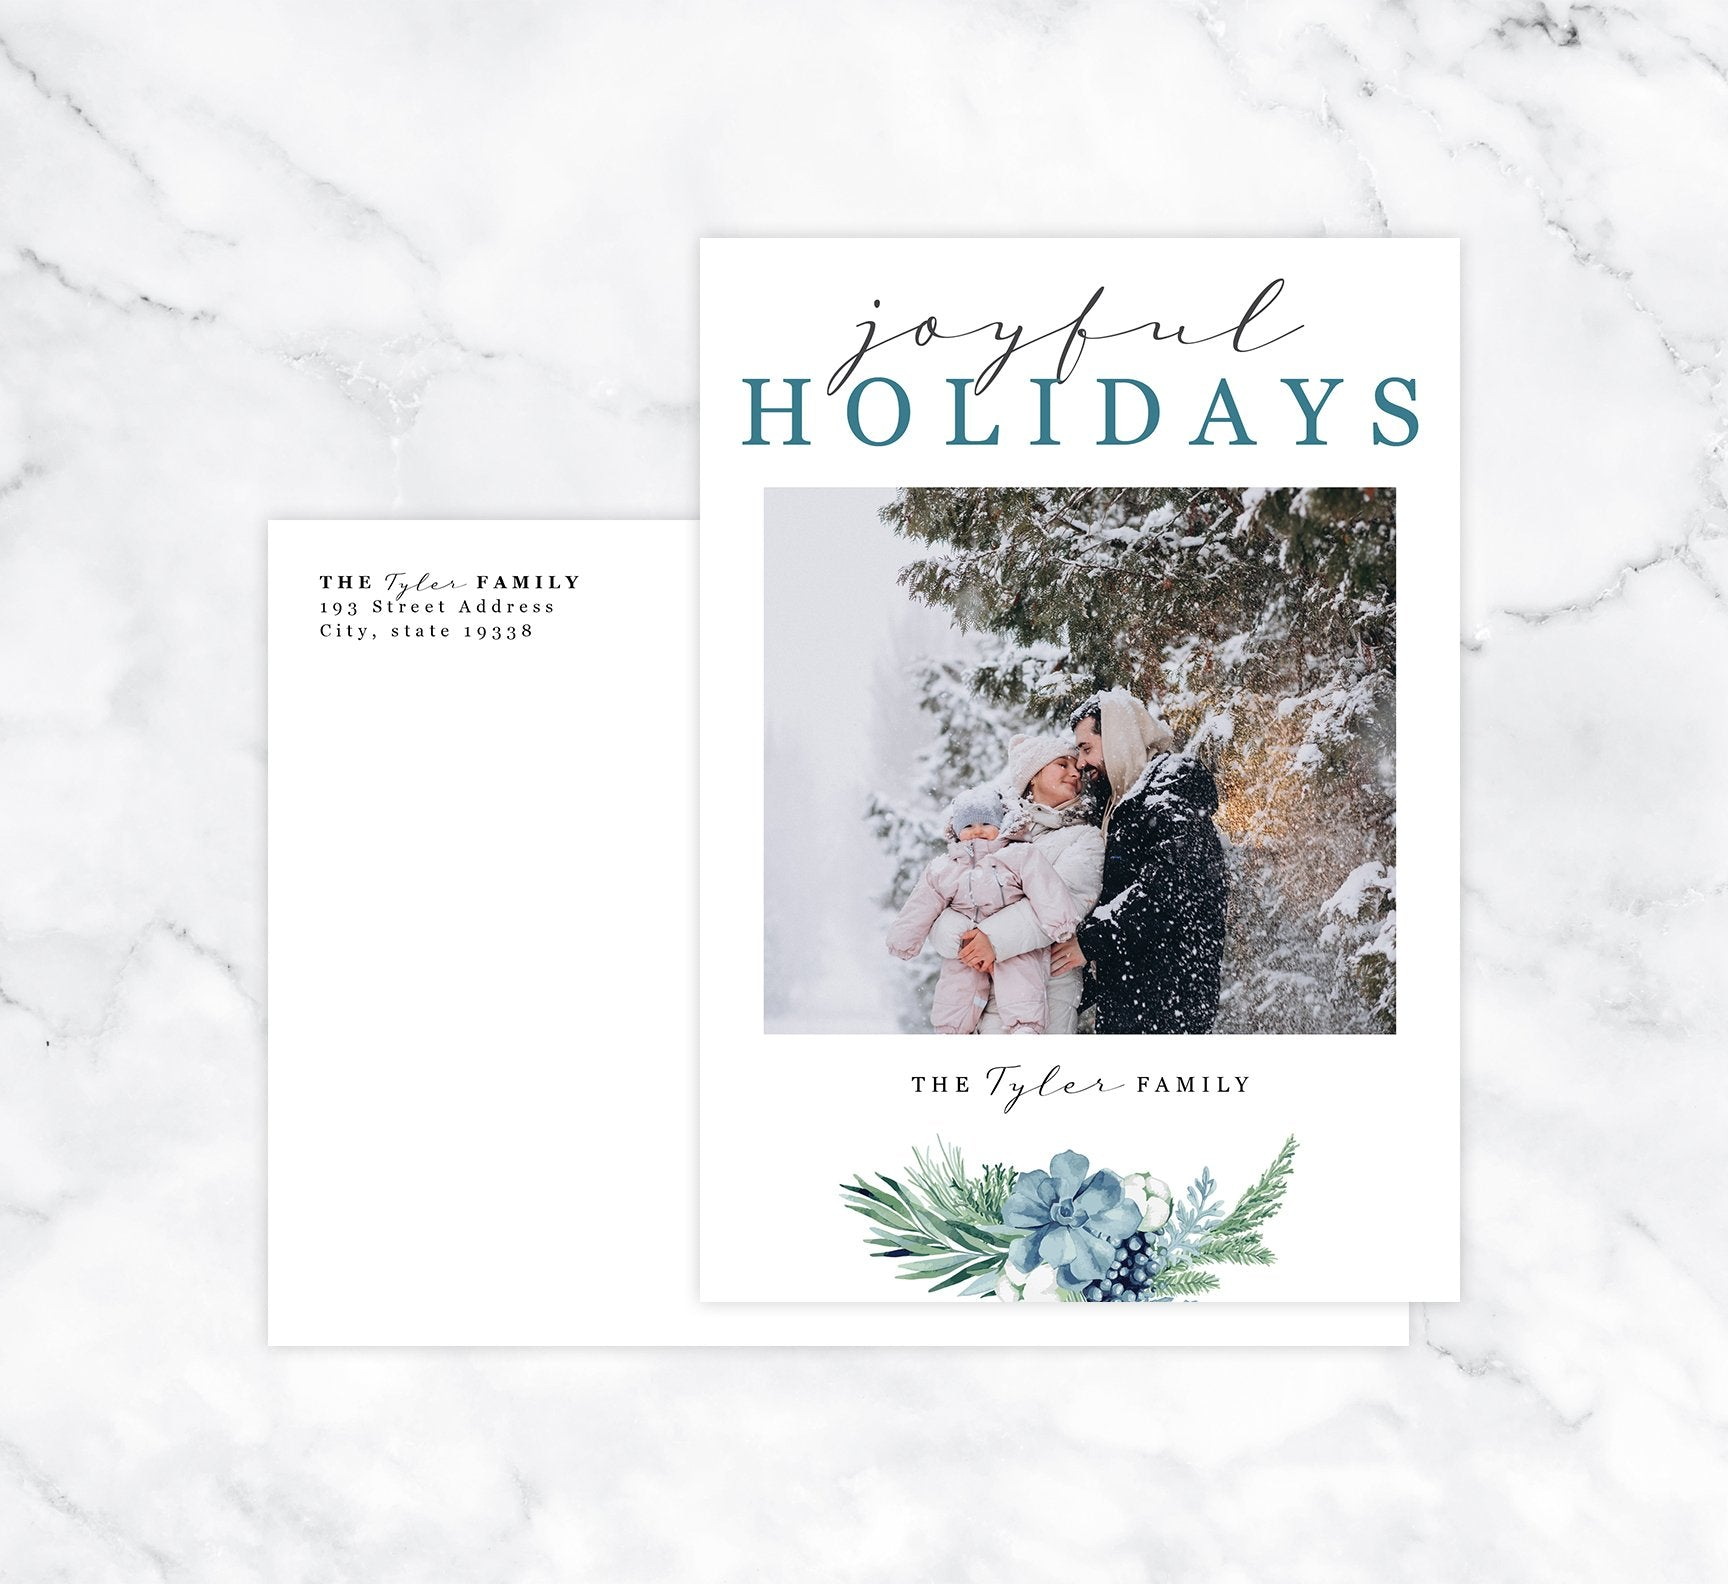 Blue Botanical Holiday Card Mockup; Holiday card with envelope and return address printed on it.